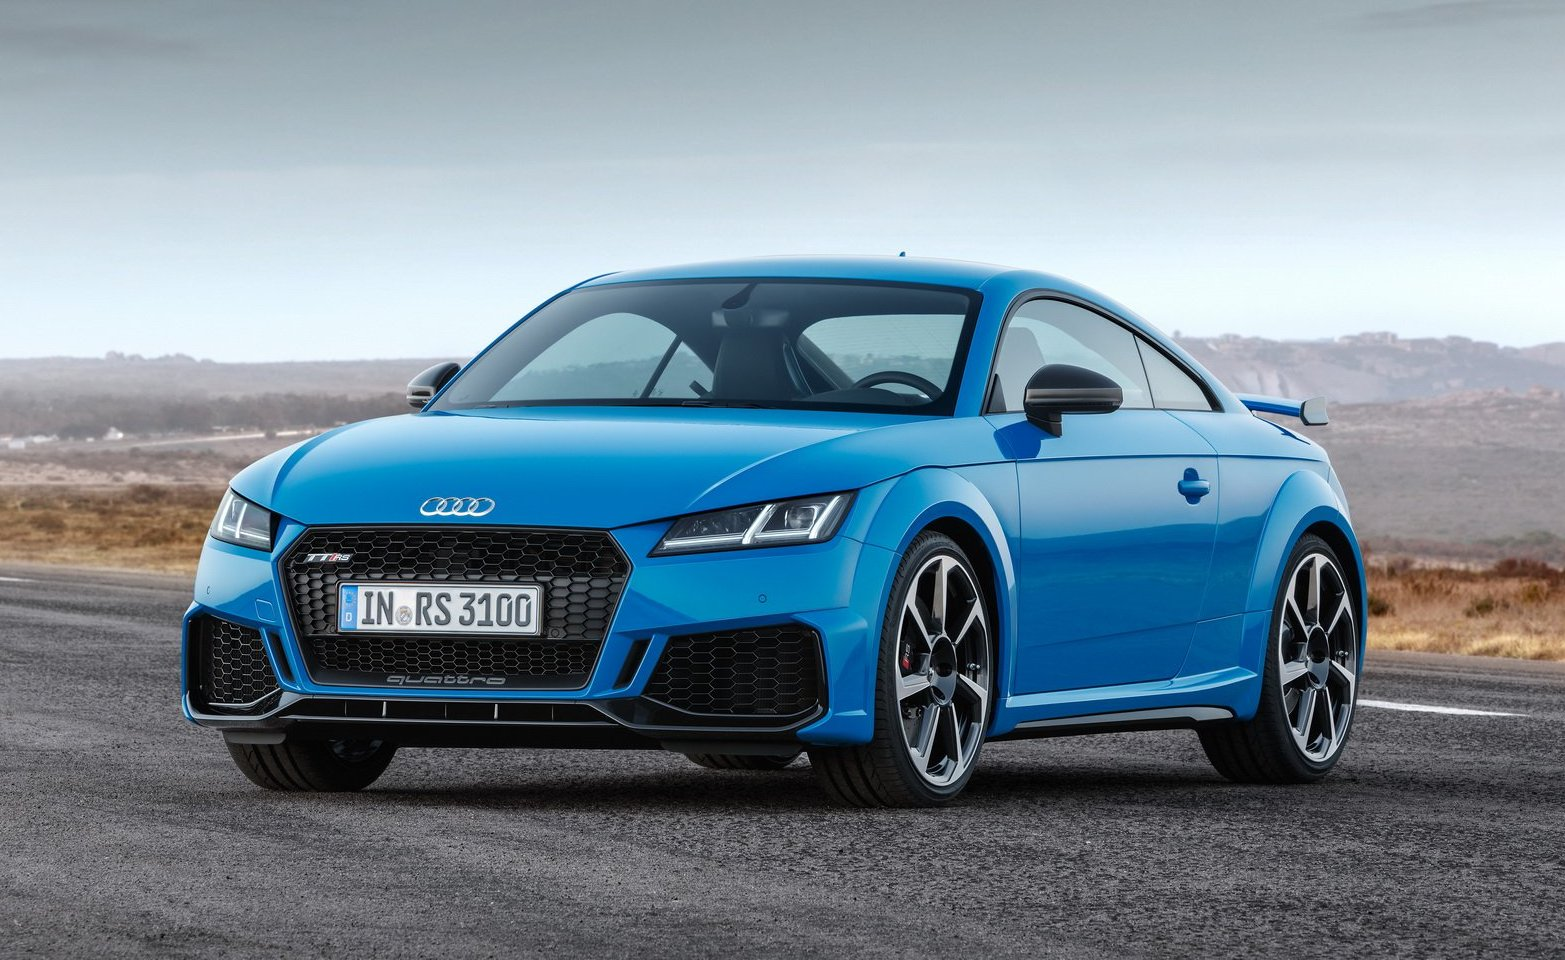 2020 Audi TT RS Coupe & Roadster Revealed - TechStory